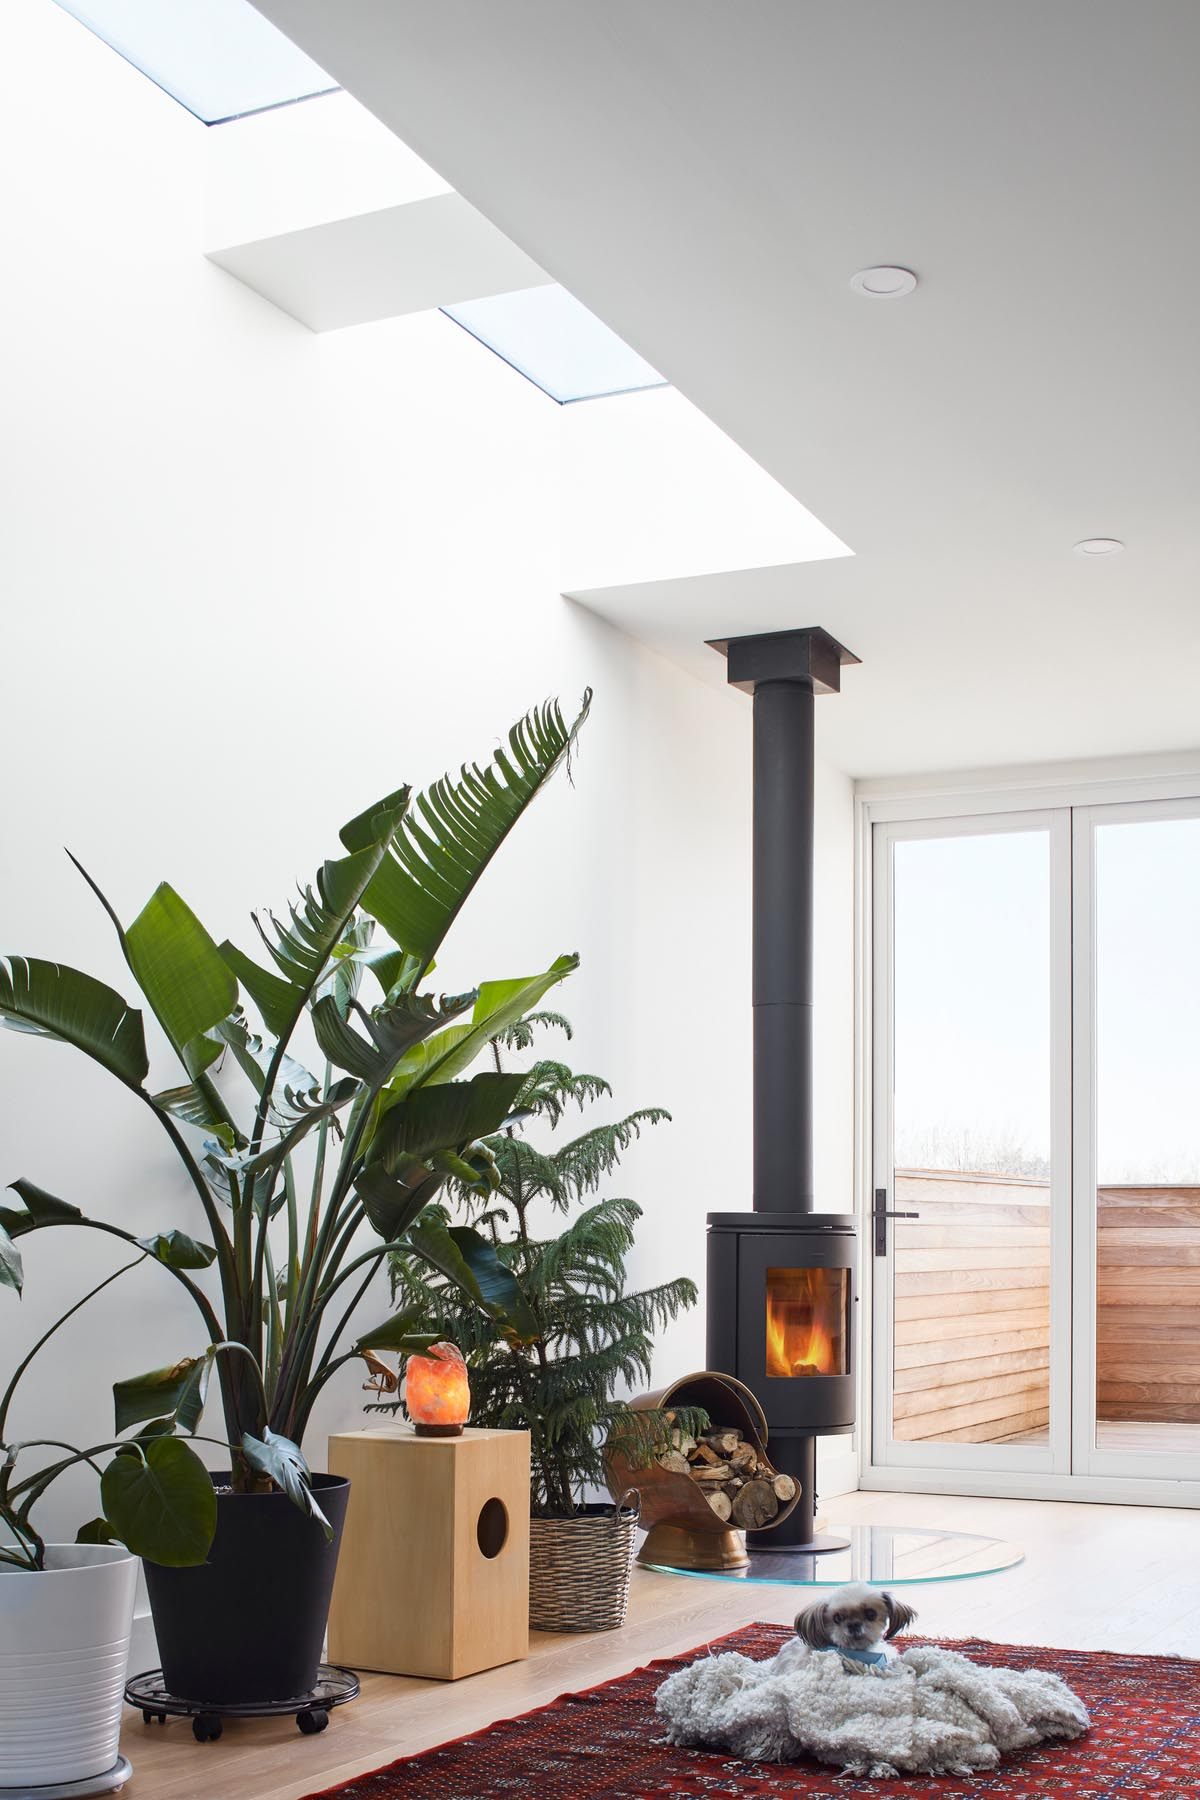 A modern living room with plants, skylights, and a black fireplace.